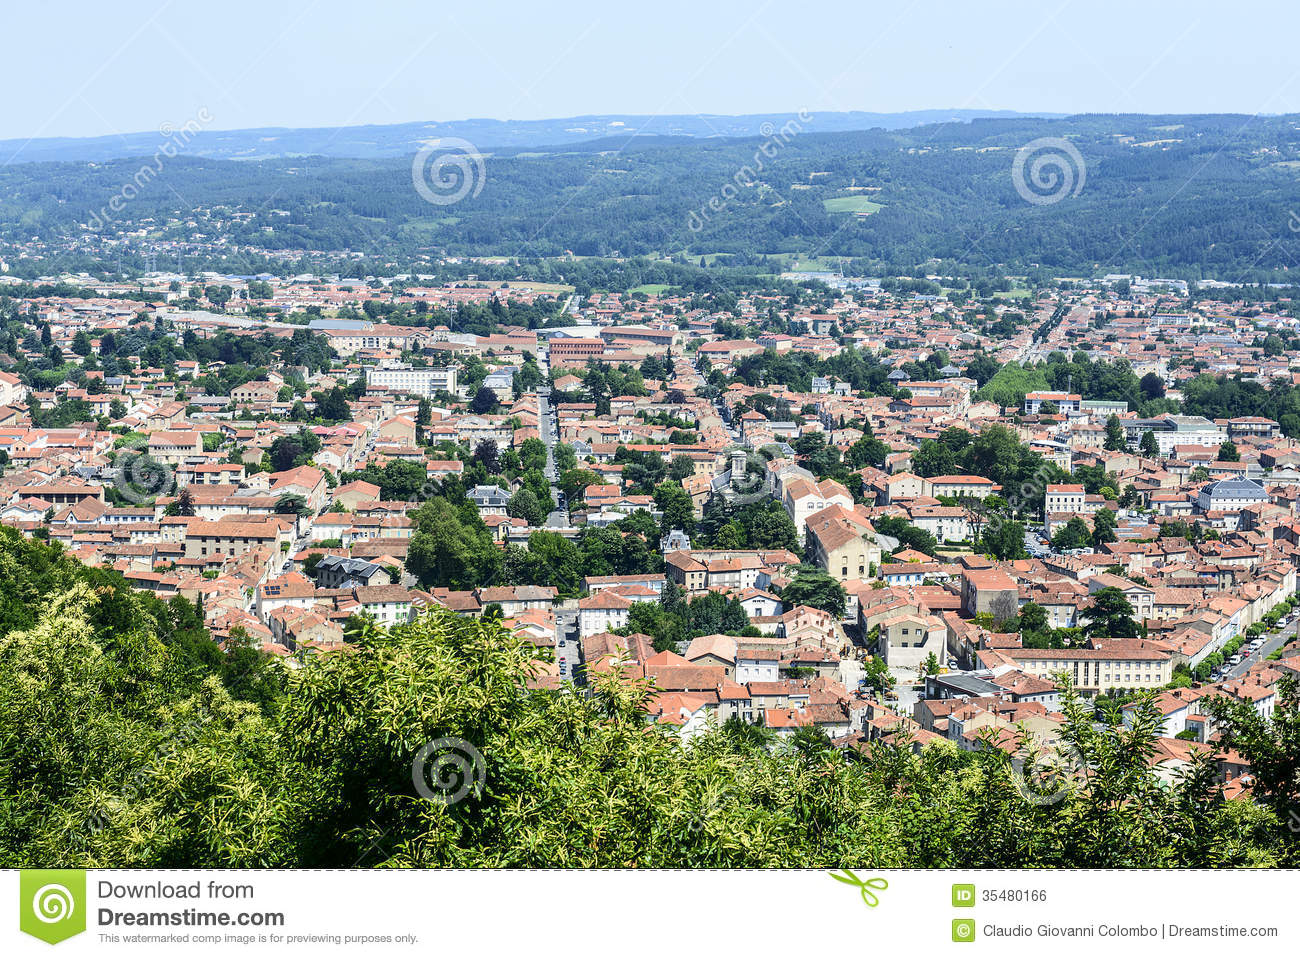 Mazamet France  City new picture : Mazamet France , Panoramic View Royalty Free Stock Image Image ...